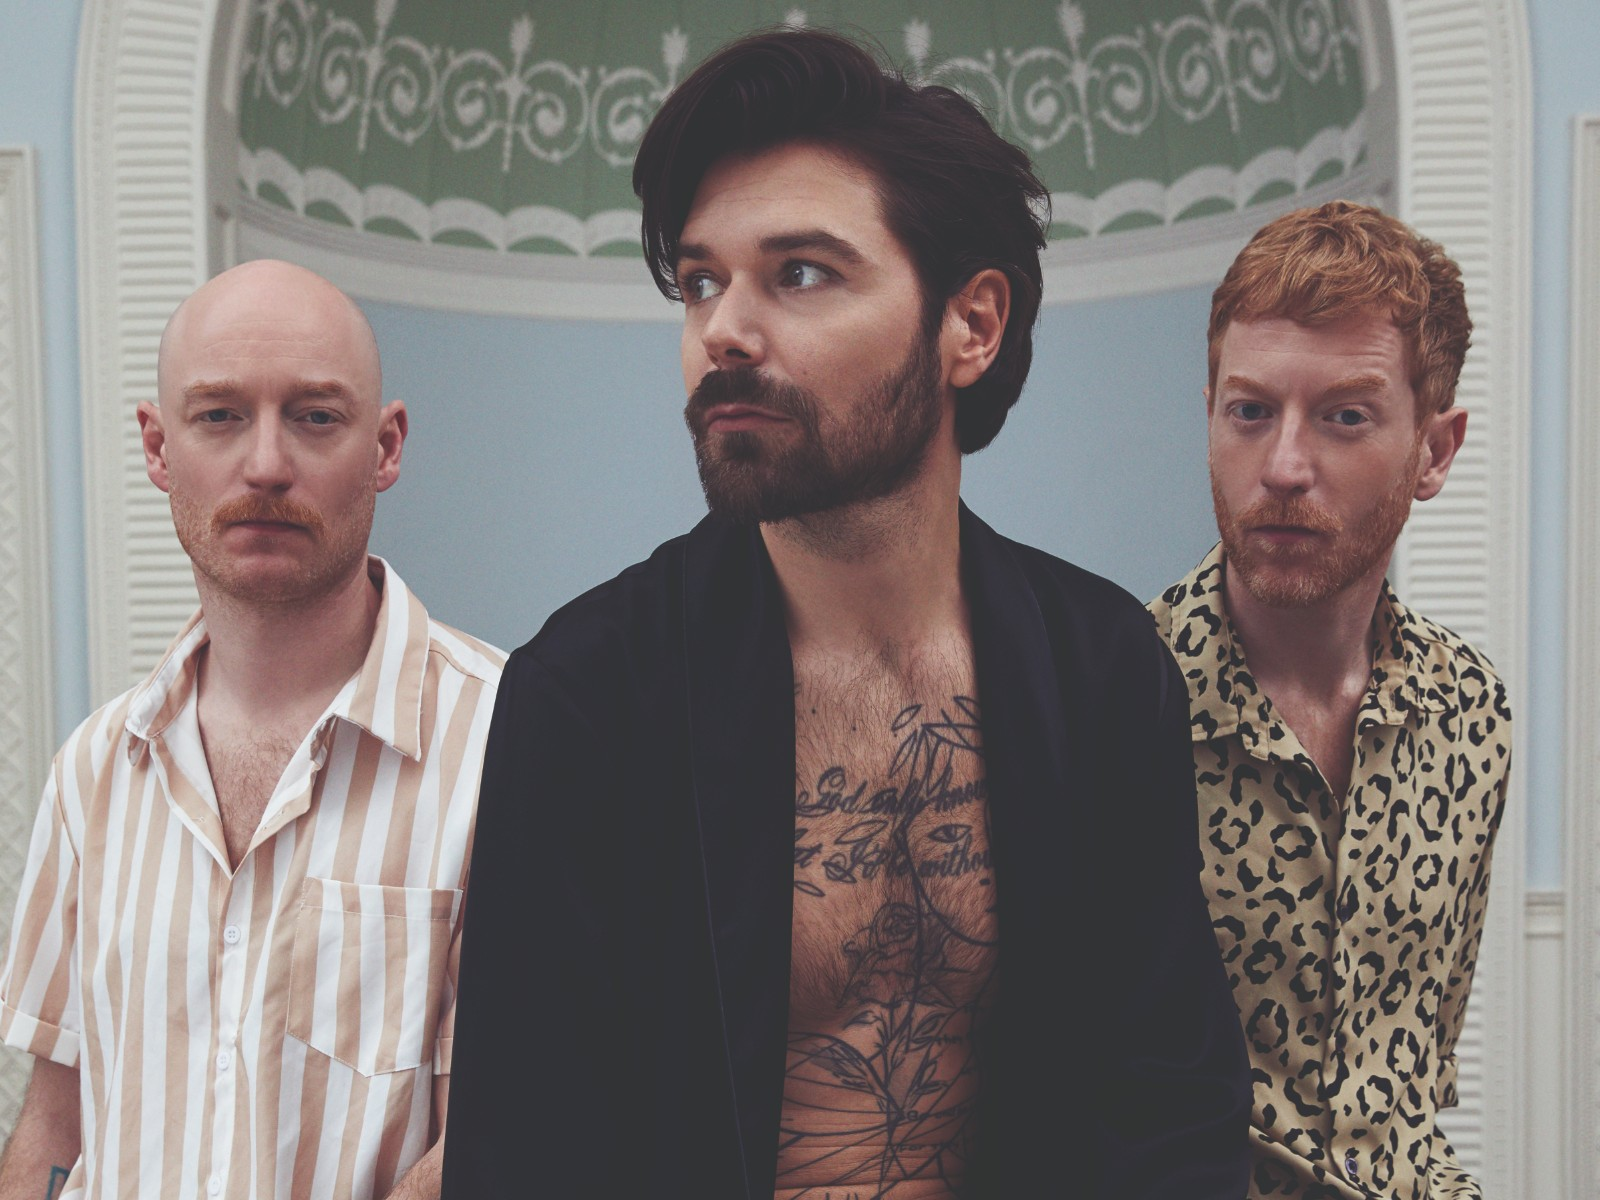 Biffy Clyro Releases Cover of 'Holier Than Thou' From 'The Metallica Blacklist' [VIDEO]